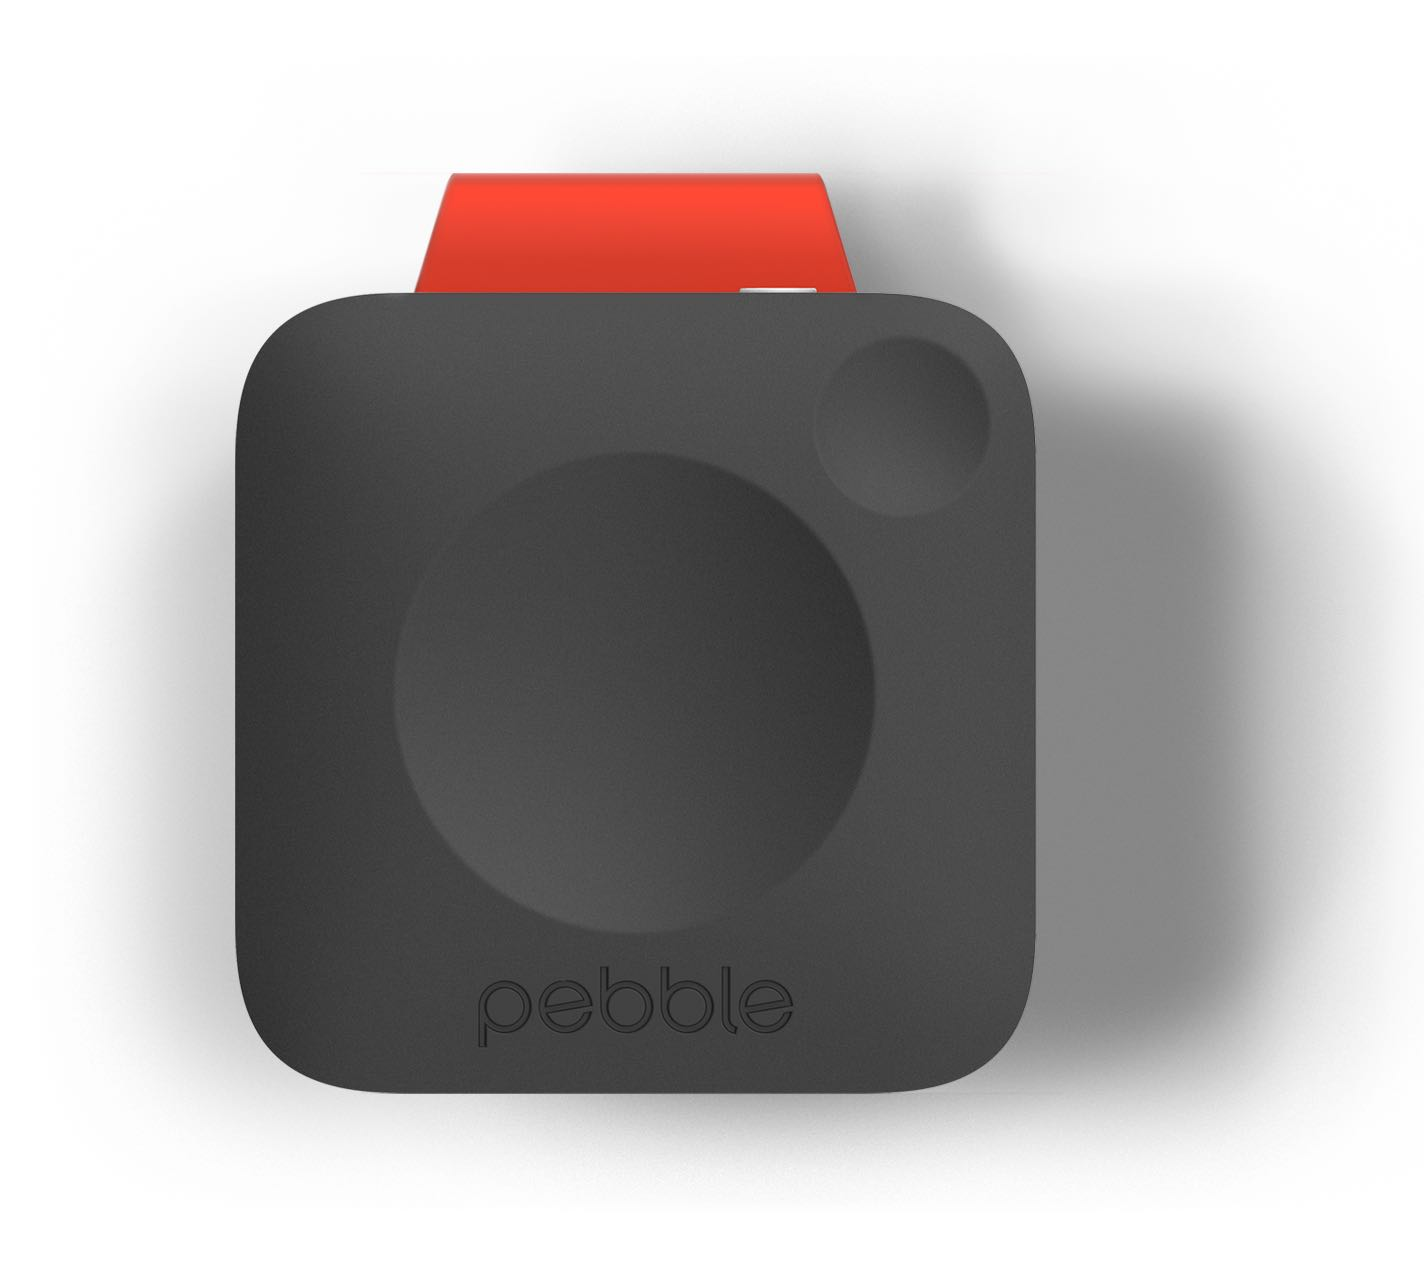 Pebble Core image 001